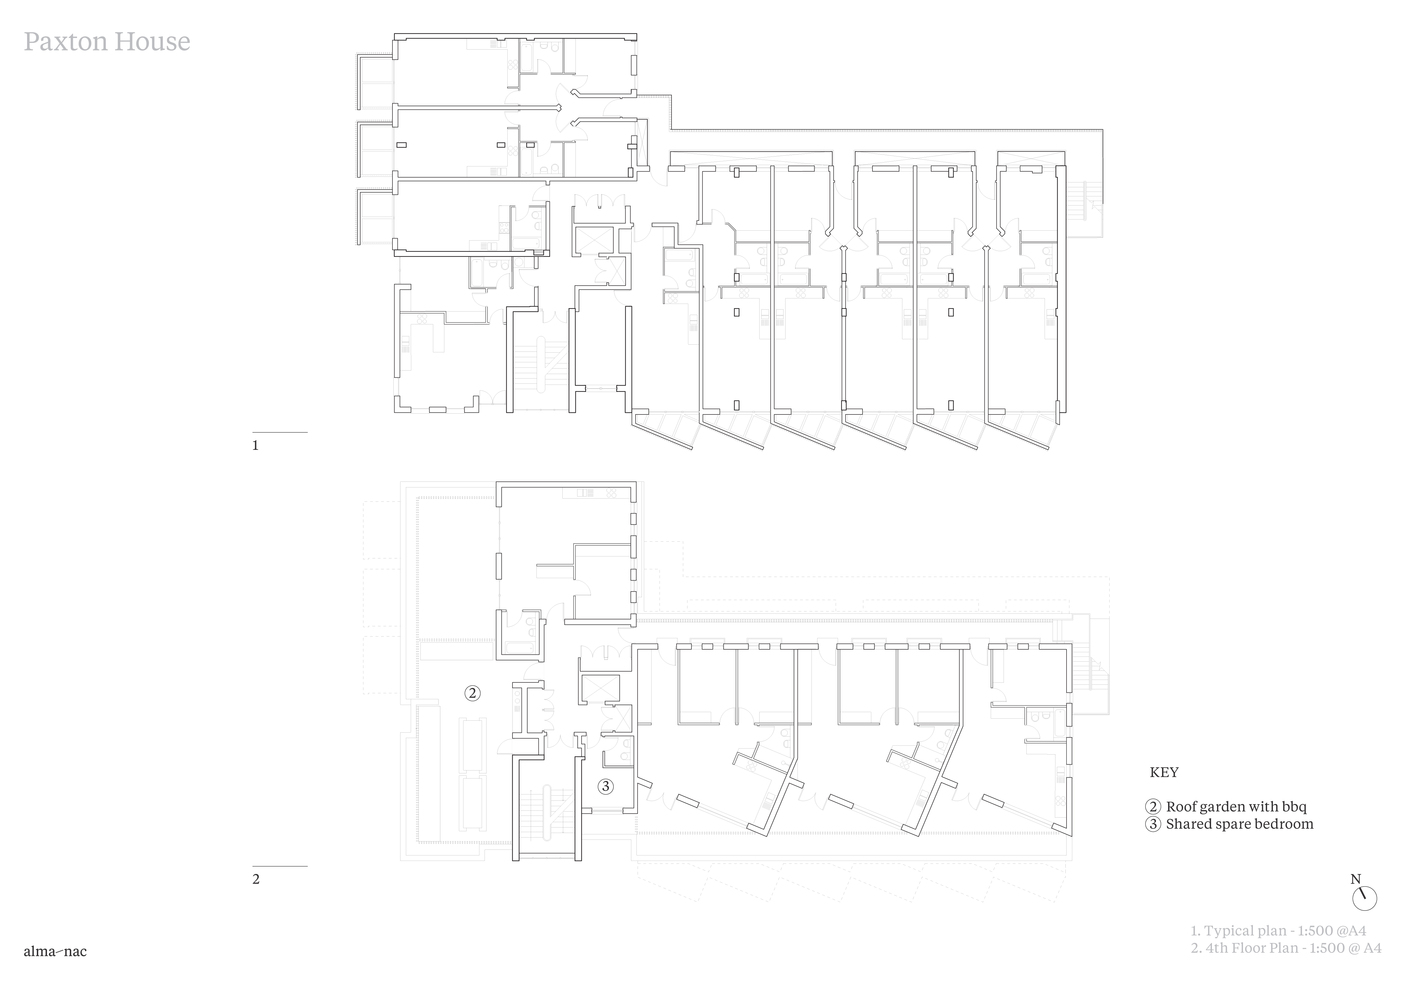 PAXTON_HOUSE_DRAWINGS_2.jpg